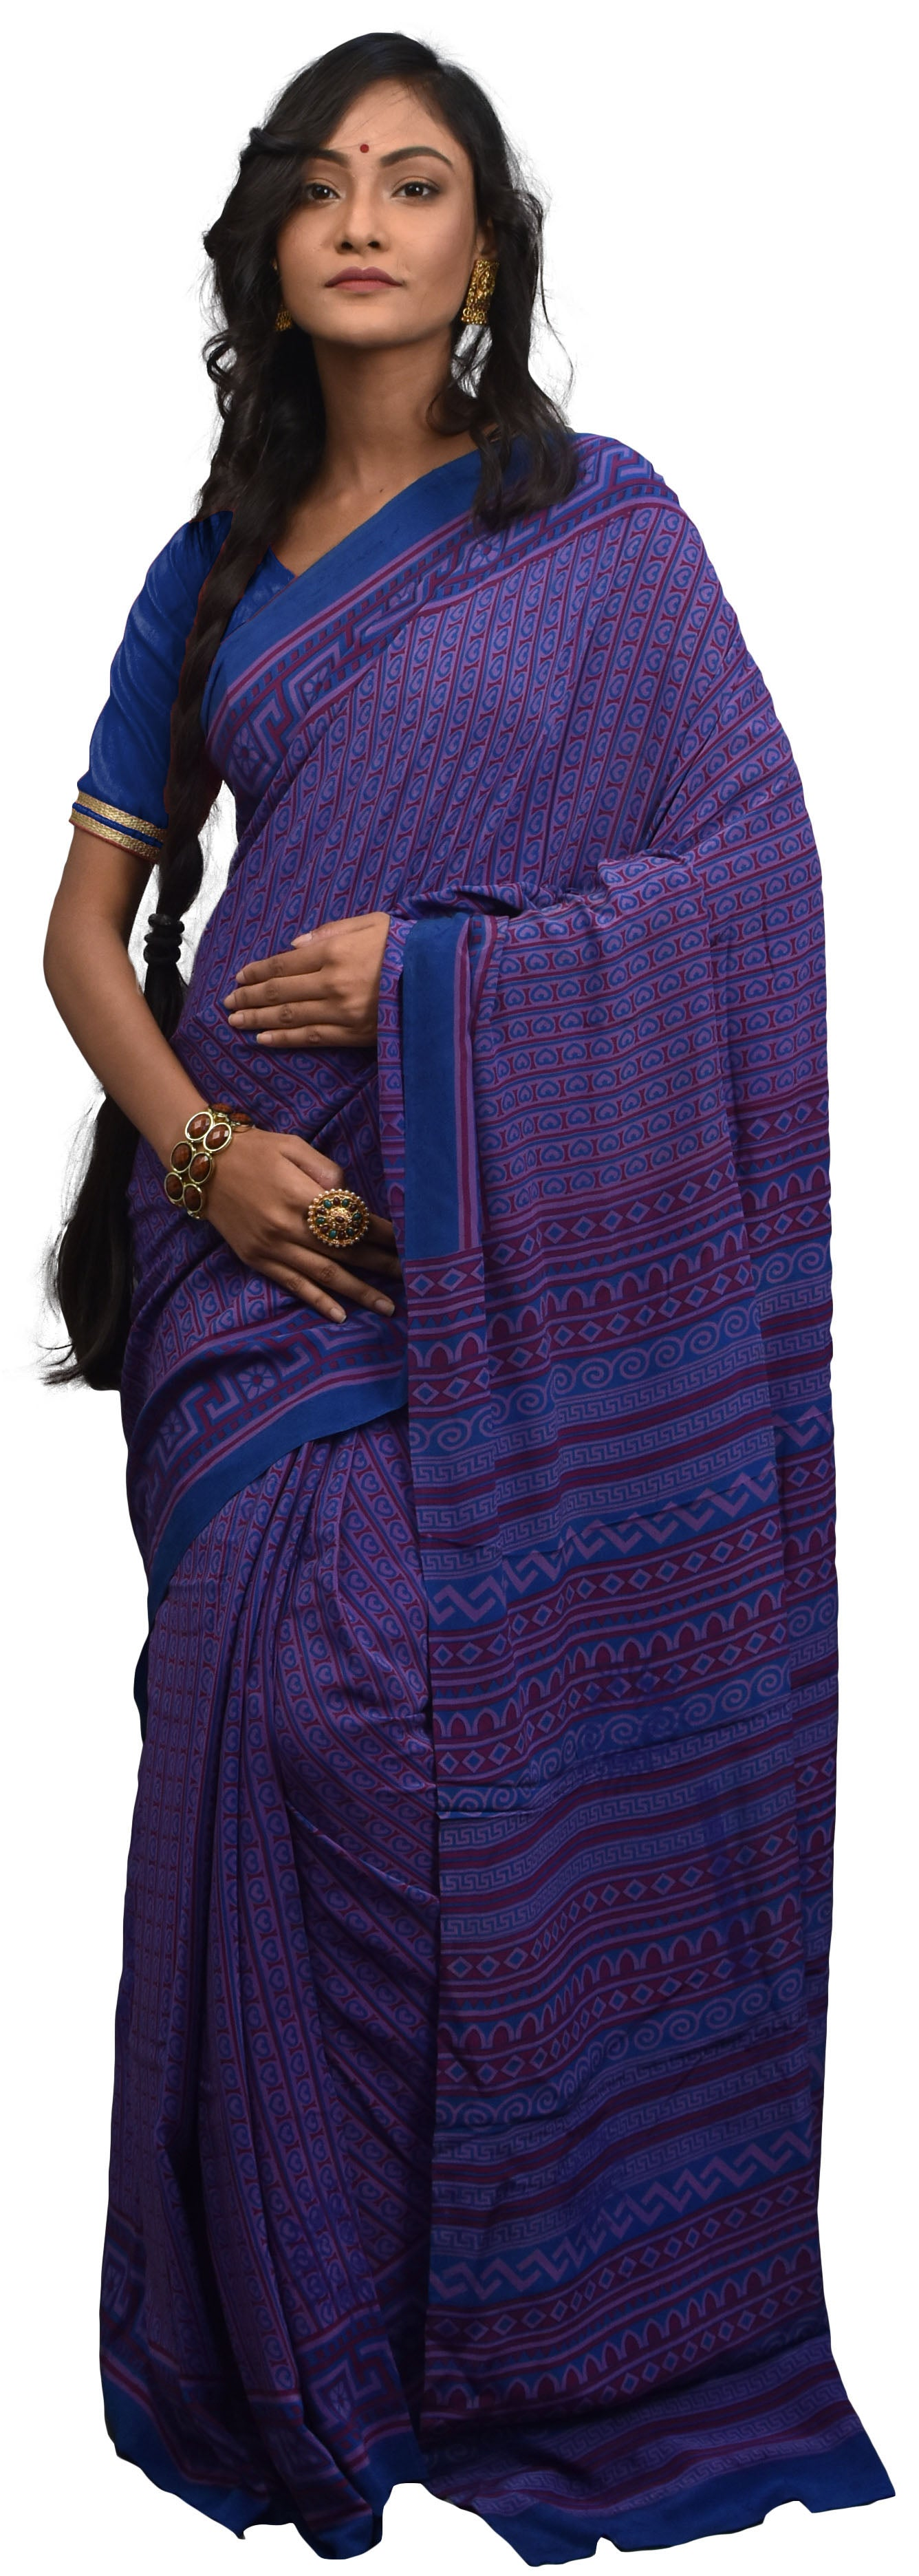 Multicolor Designer Wedding Partywear Pure Crepe Hand Brush Reprinted Kolkata Saree Sari RP200